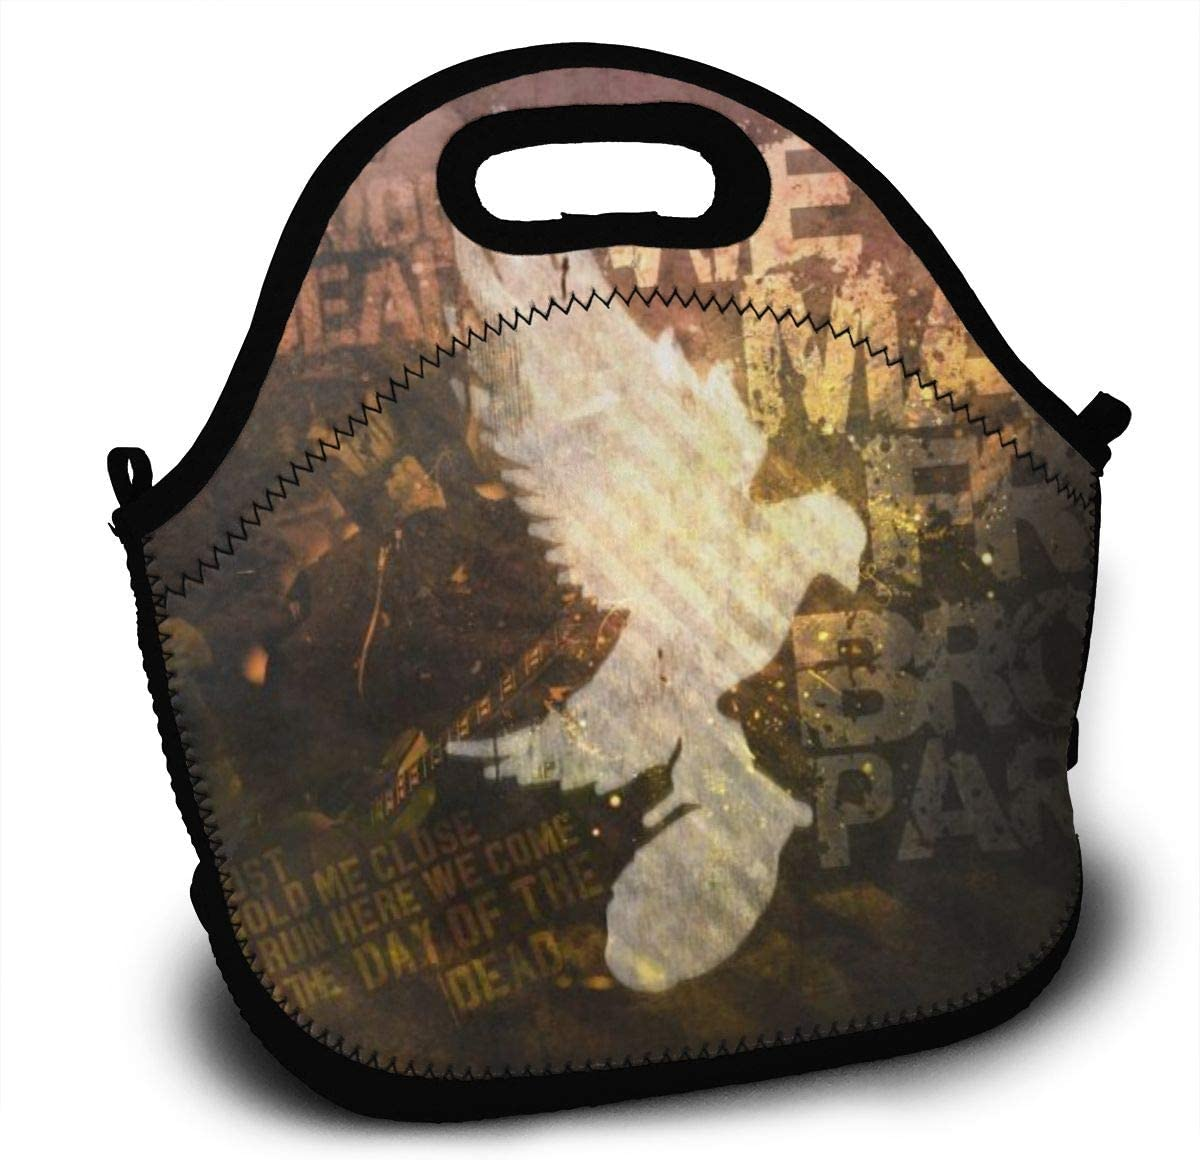 Hollywood Undead Dove And Grenade-Lunch Tote Thick Reusable Insulated Thermal Lunch Bag Small Lunch Box Handbags Tote With Zipper For Adults Kids Nurse Teacher Work Outdoor Travel Picnic